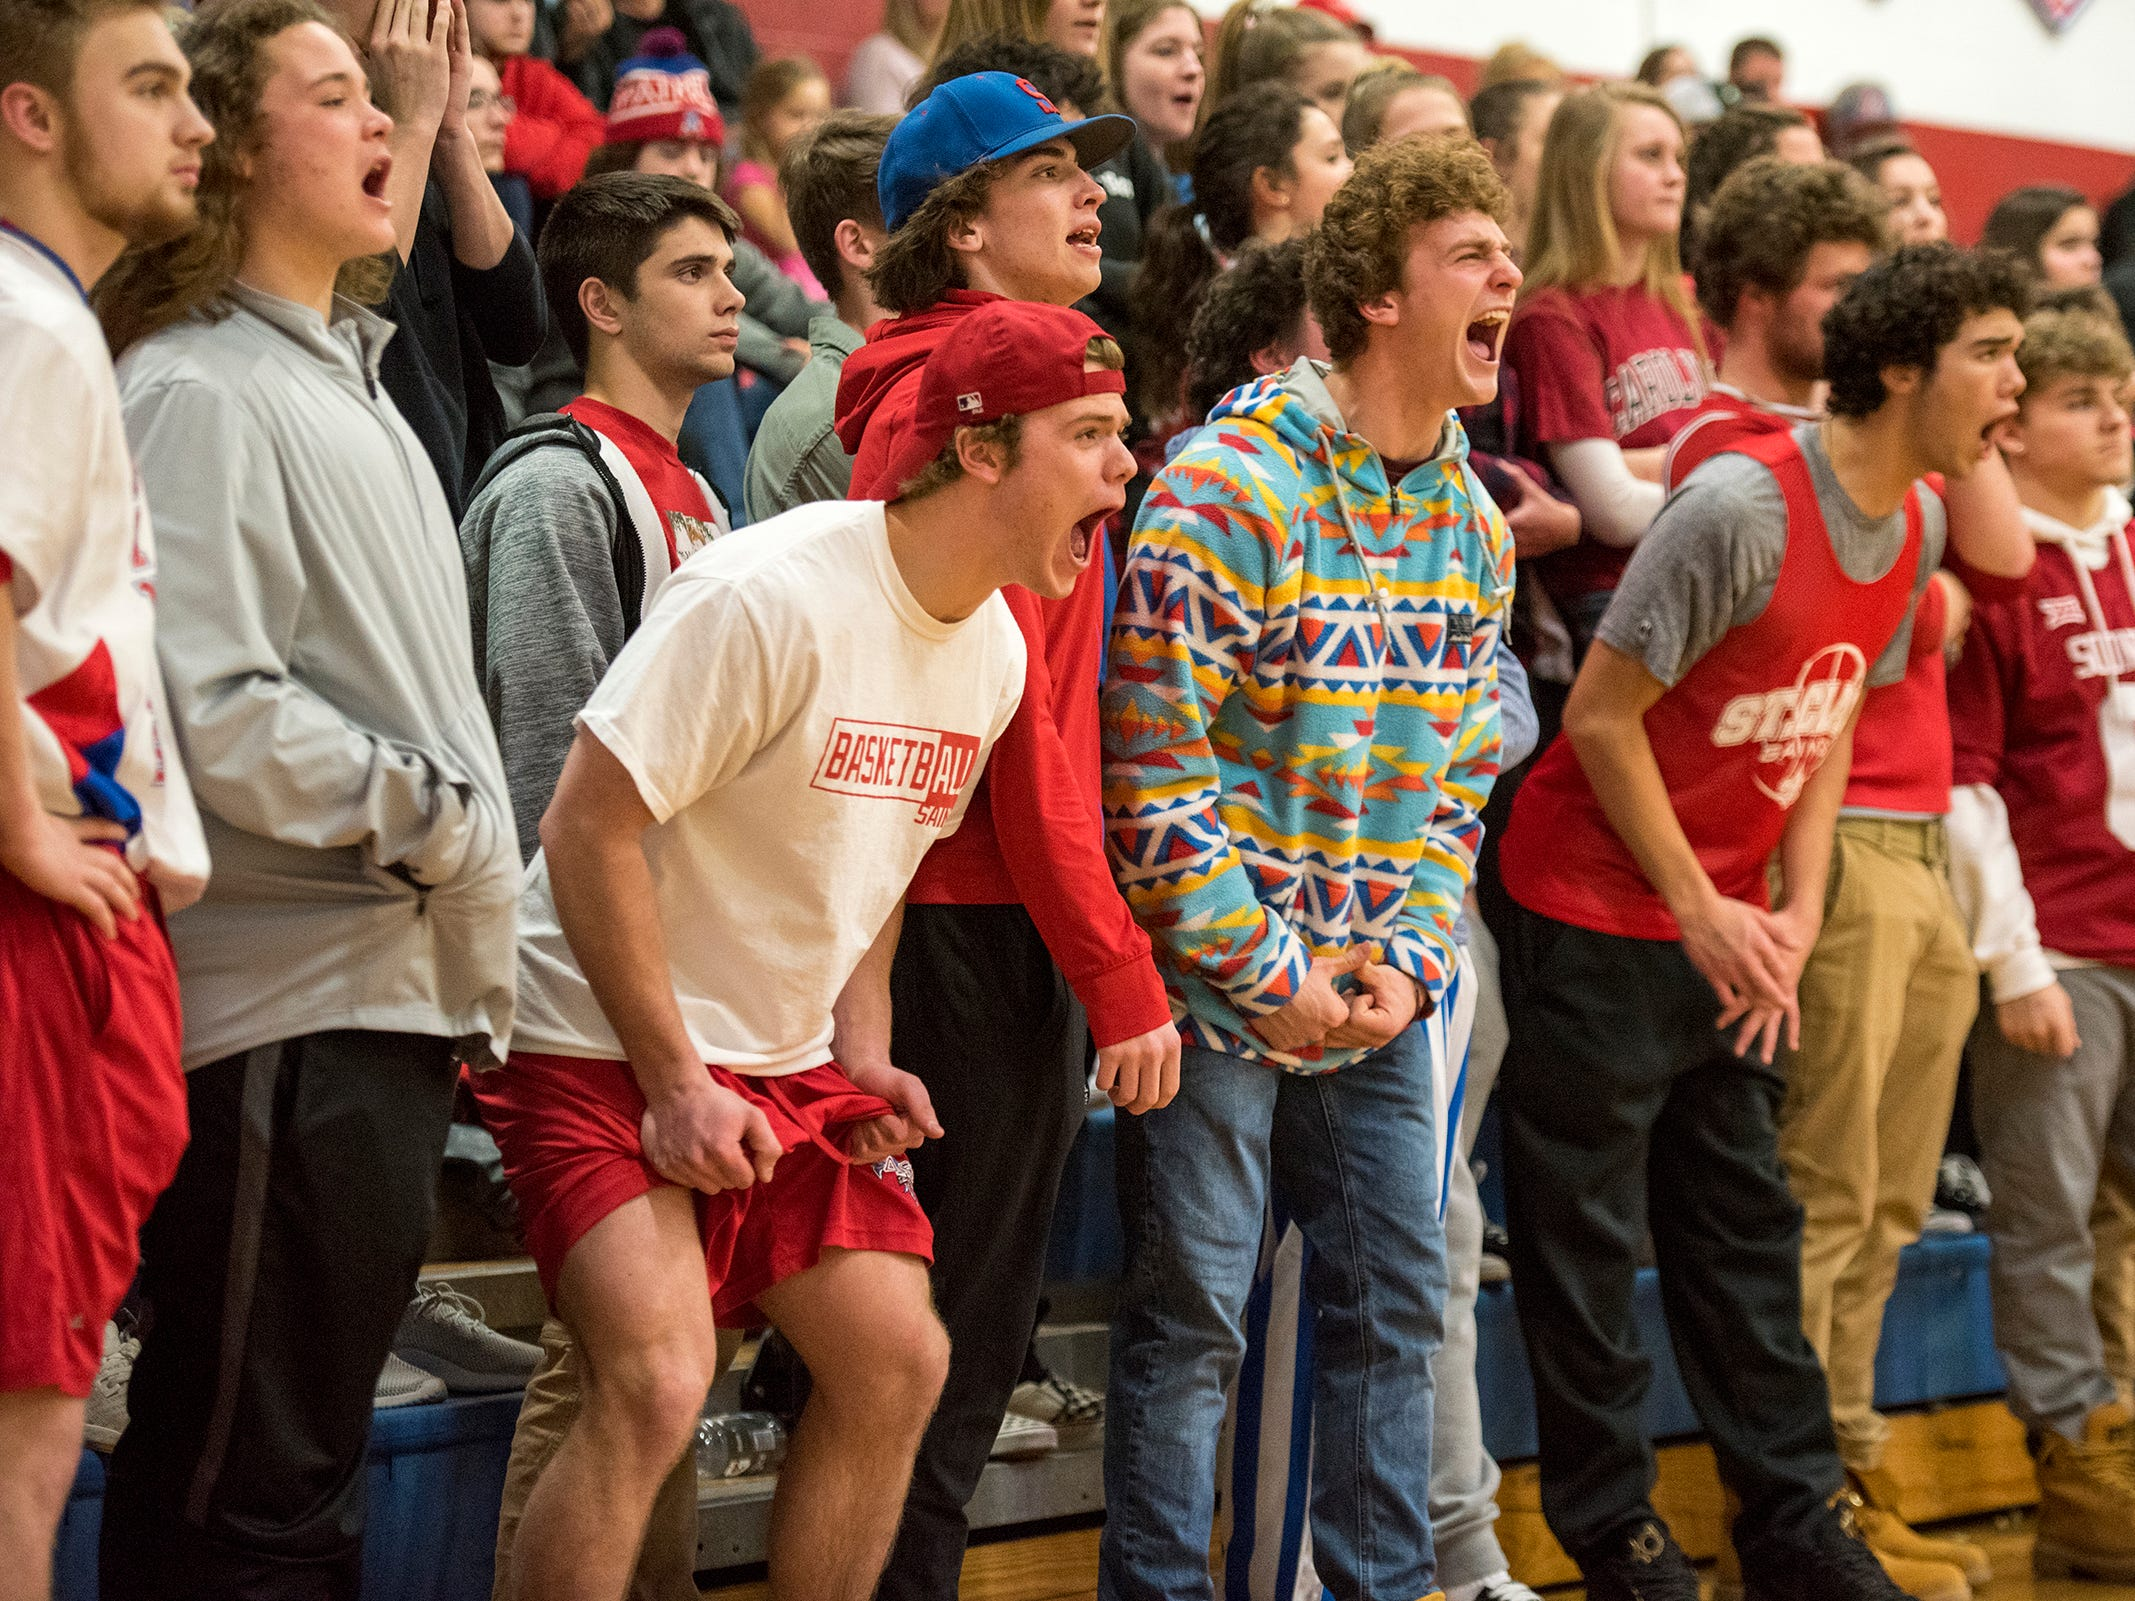 Fans try to cause a distraction while Richond High School forward Justin Schweiger shoots a free throw during the first round of the MHSAA district basketball tournament Monday, Feb. 25, 2019 at St. Clair High School.